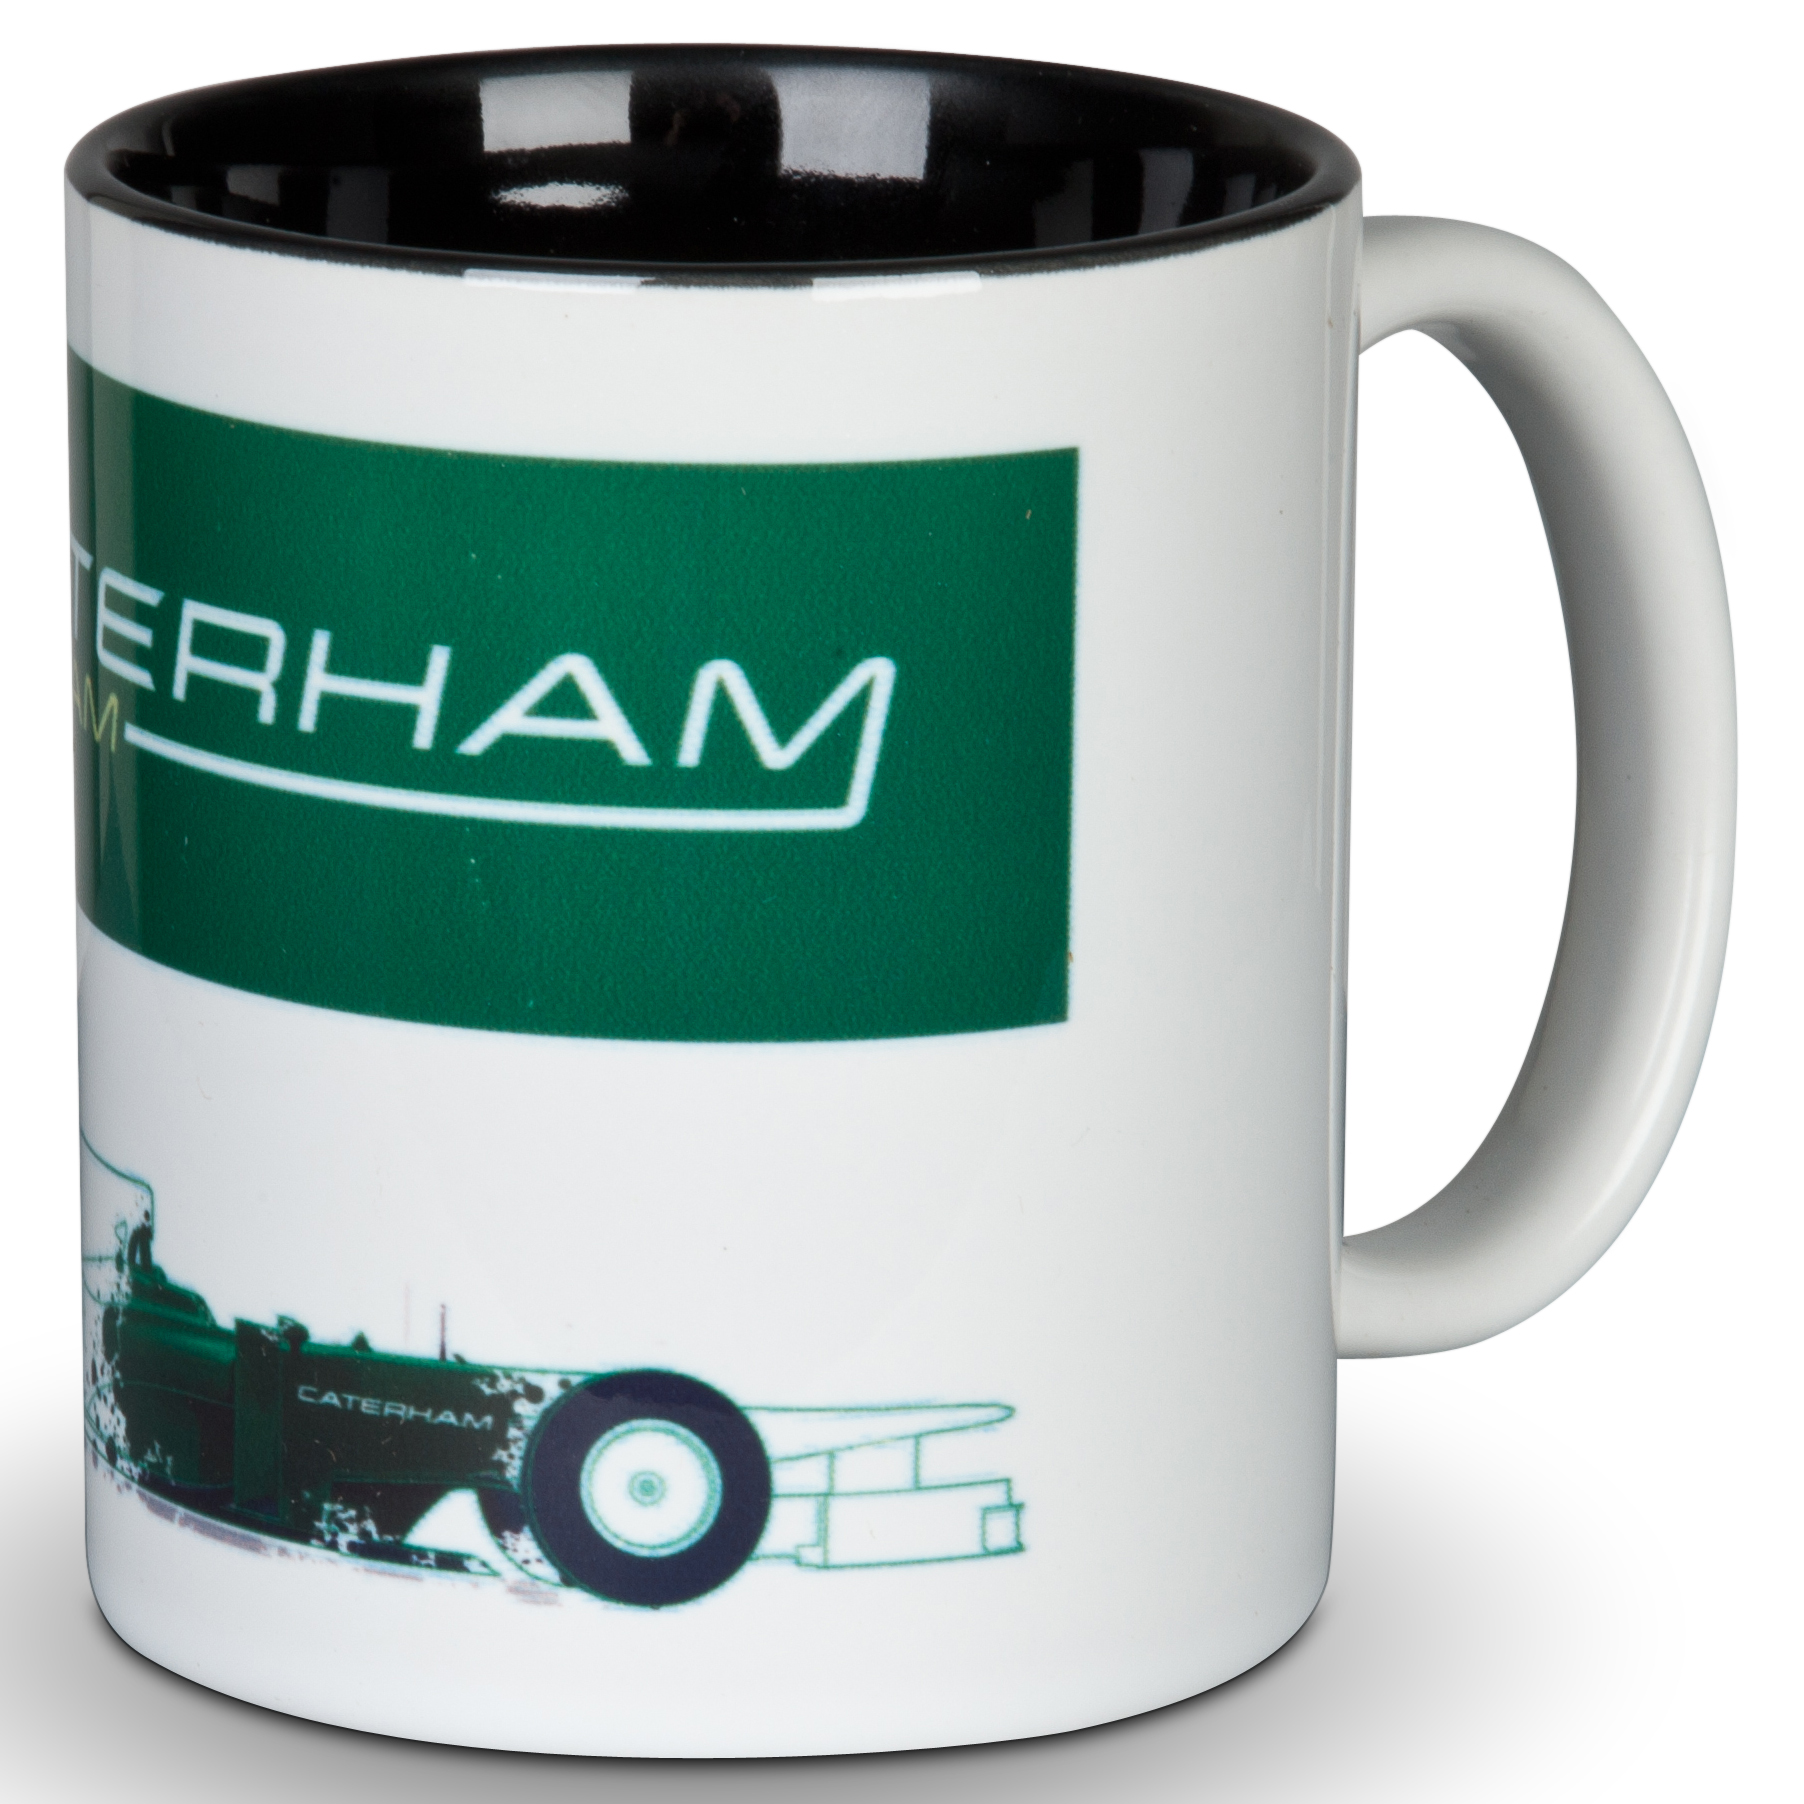 Caterham F1 Team Mug